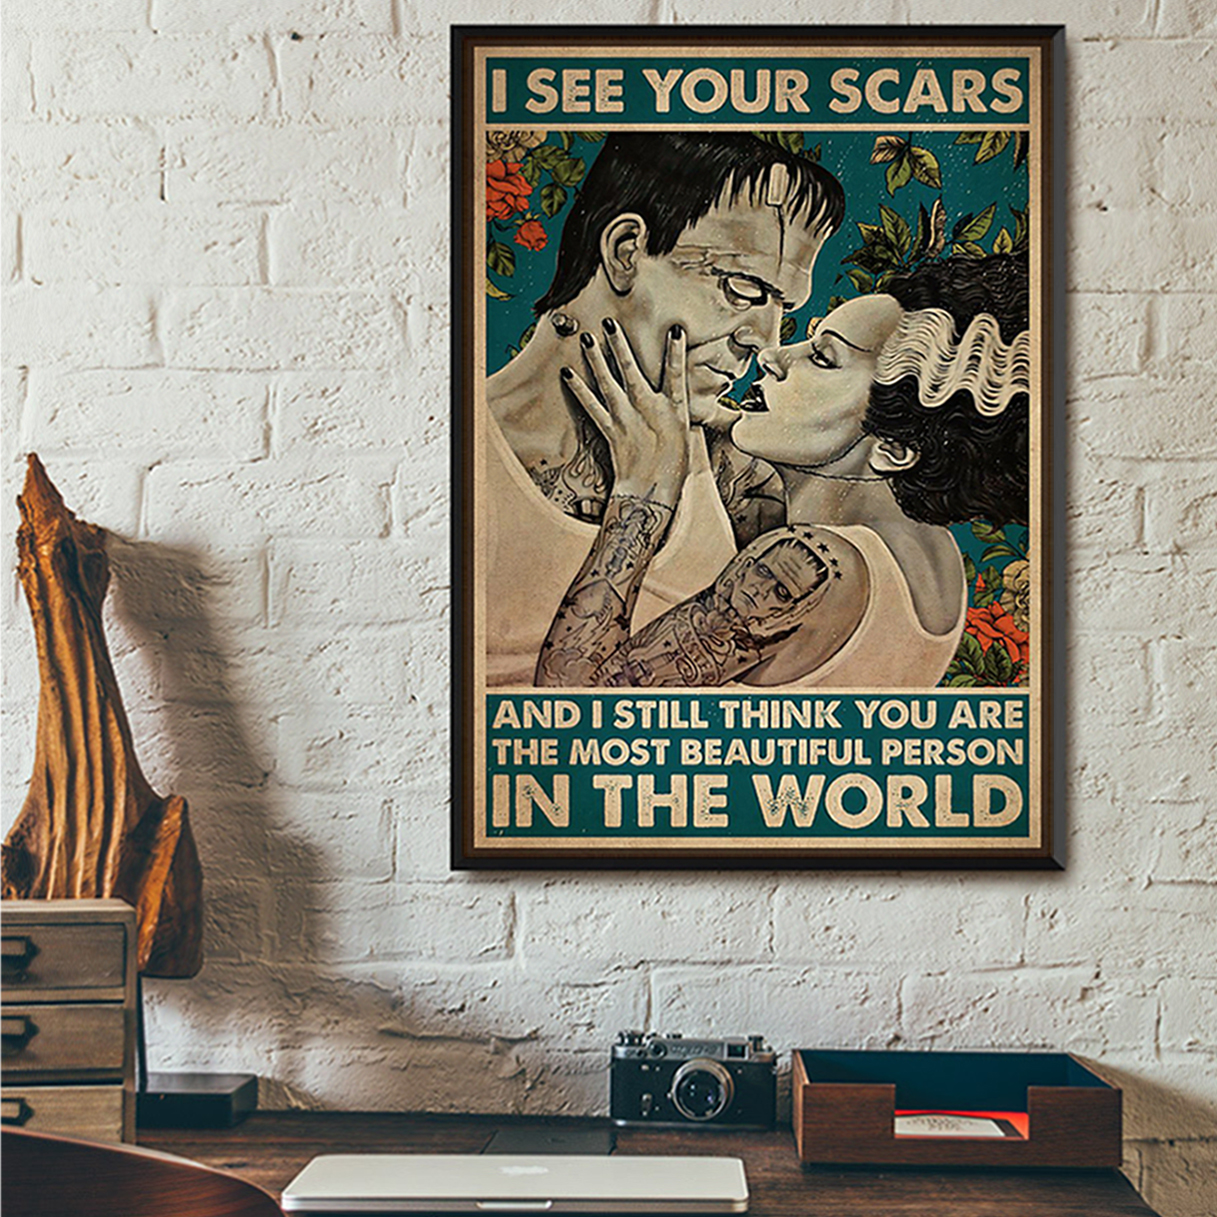 Frankenstein and bride I see your scars poster A3